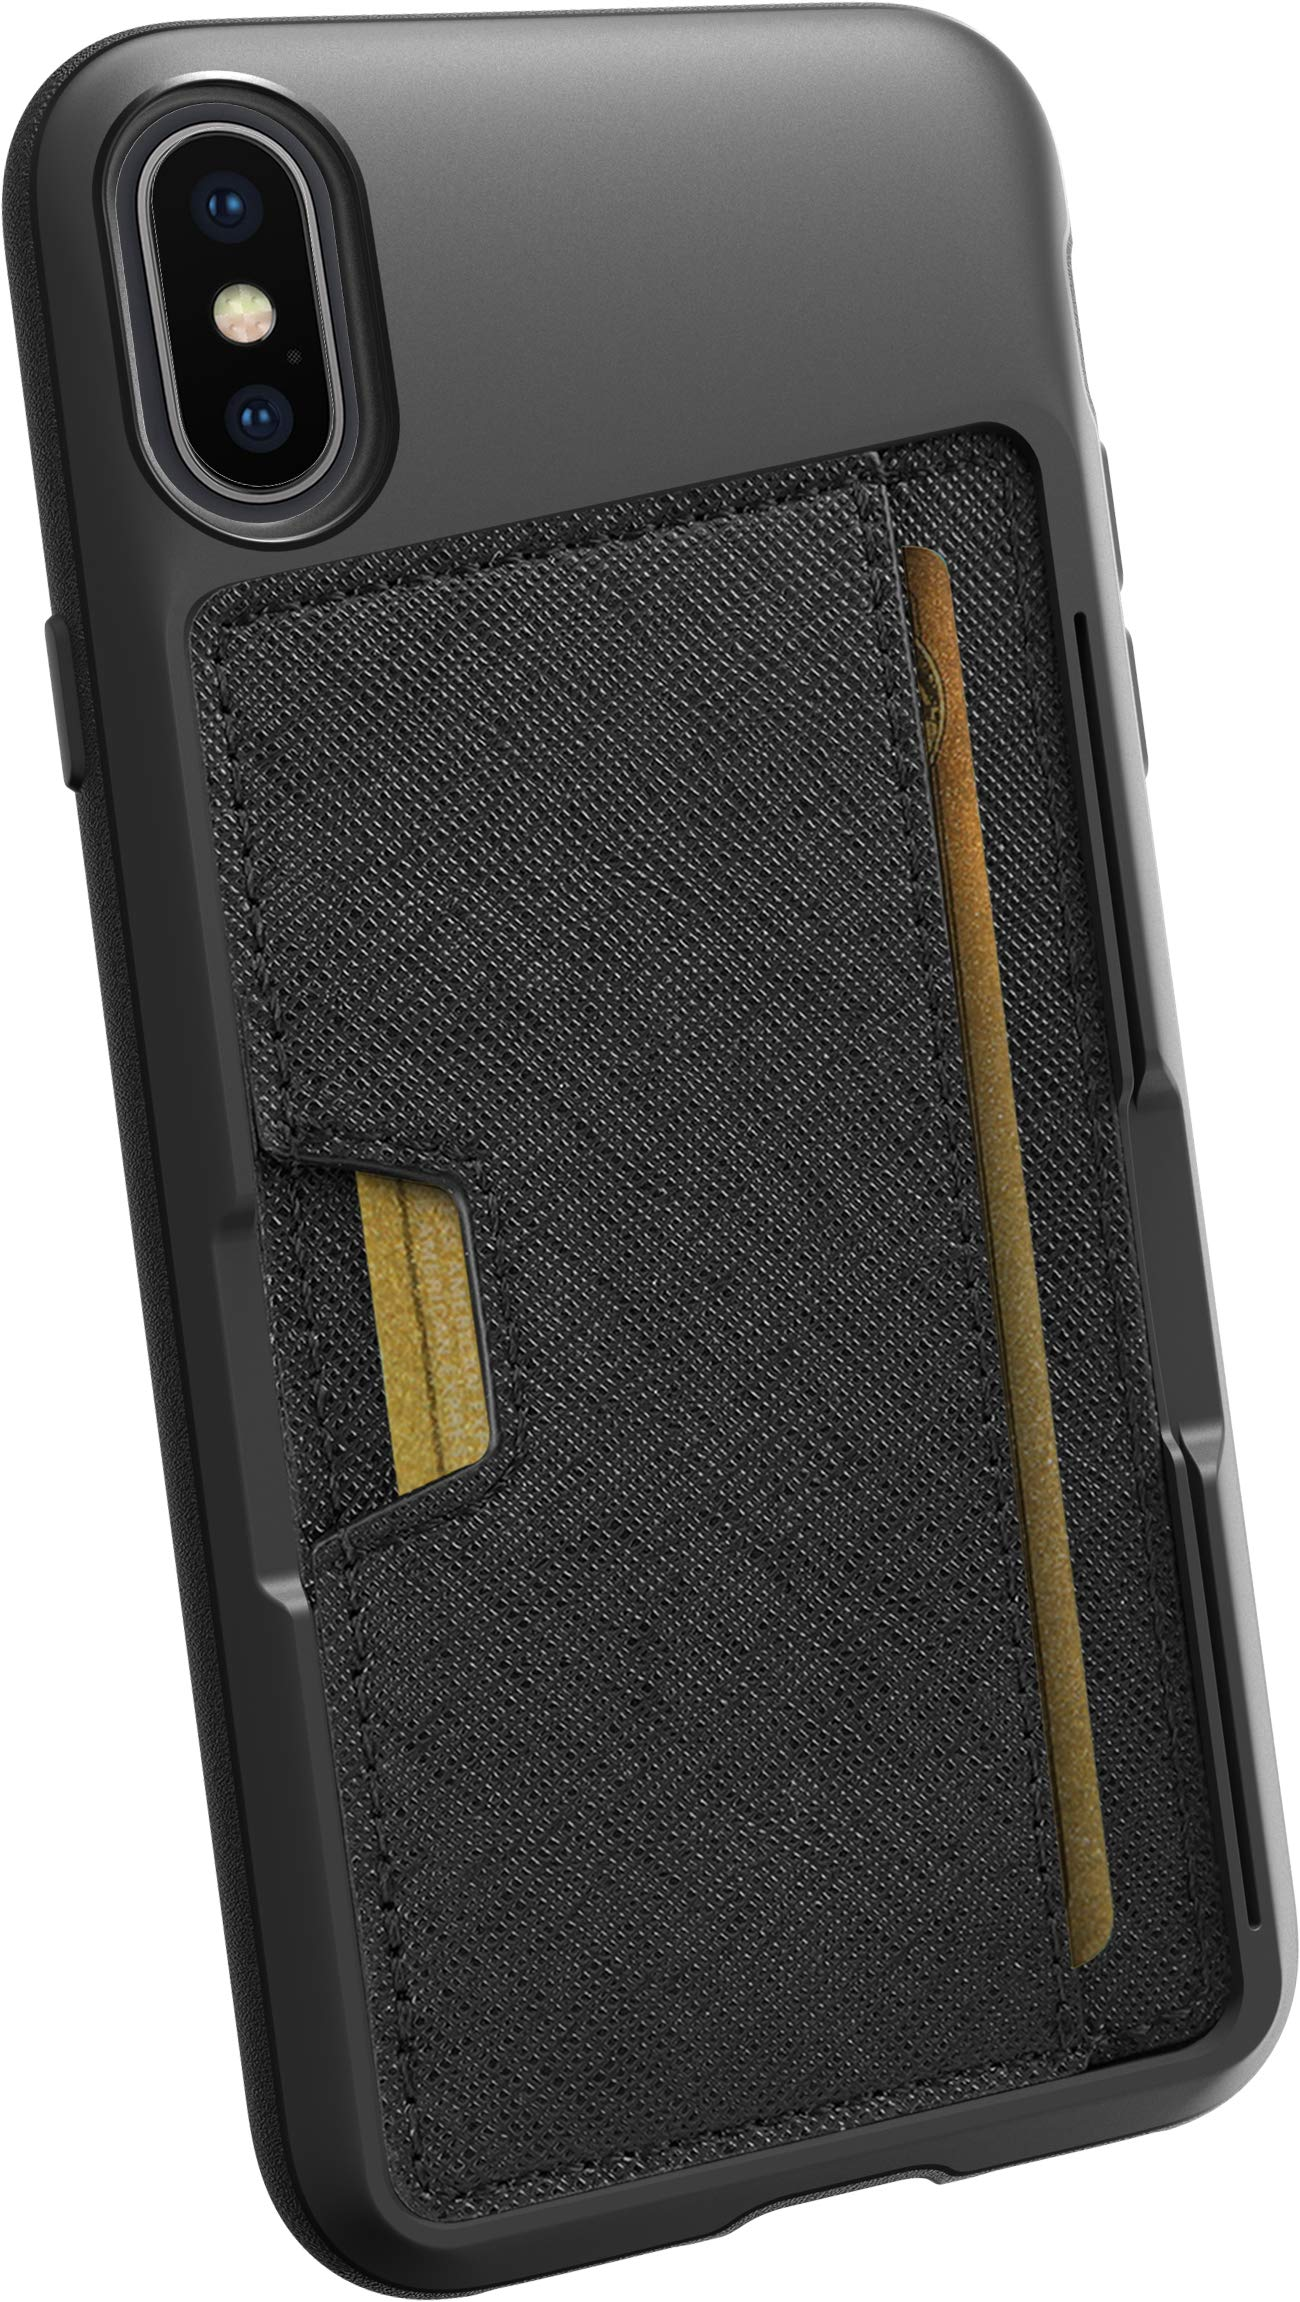 Smartish iPhone X/XS Wallet Case - Wallet Slayer Vol. 2 [Slim Protective Kickstand] Credit Card Holder for Apple iPhone 10s/10 (Silk) - Black Tie Affair by Smartish